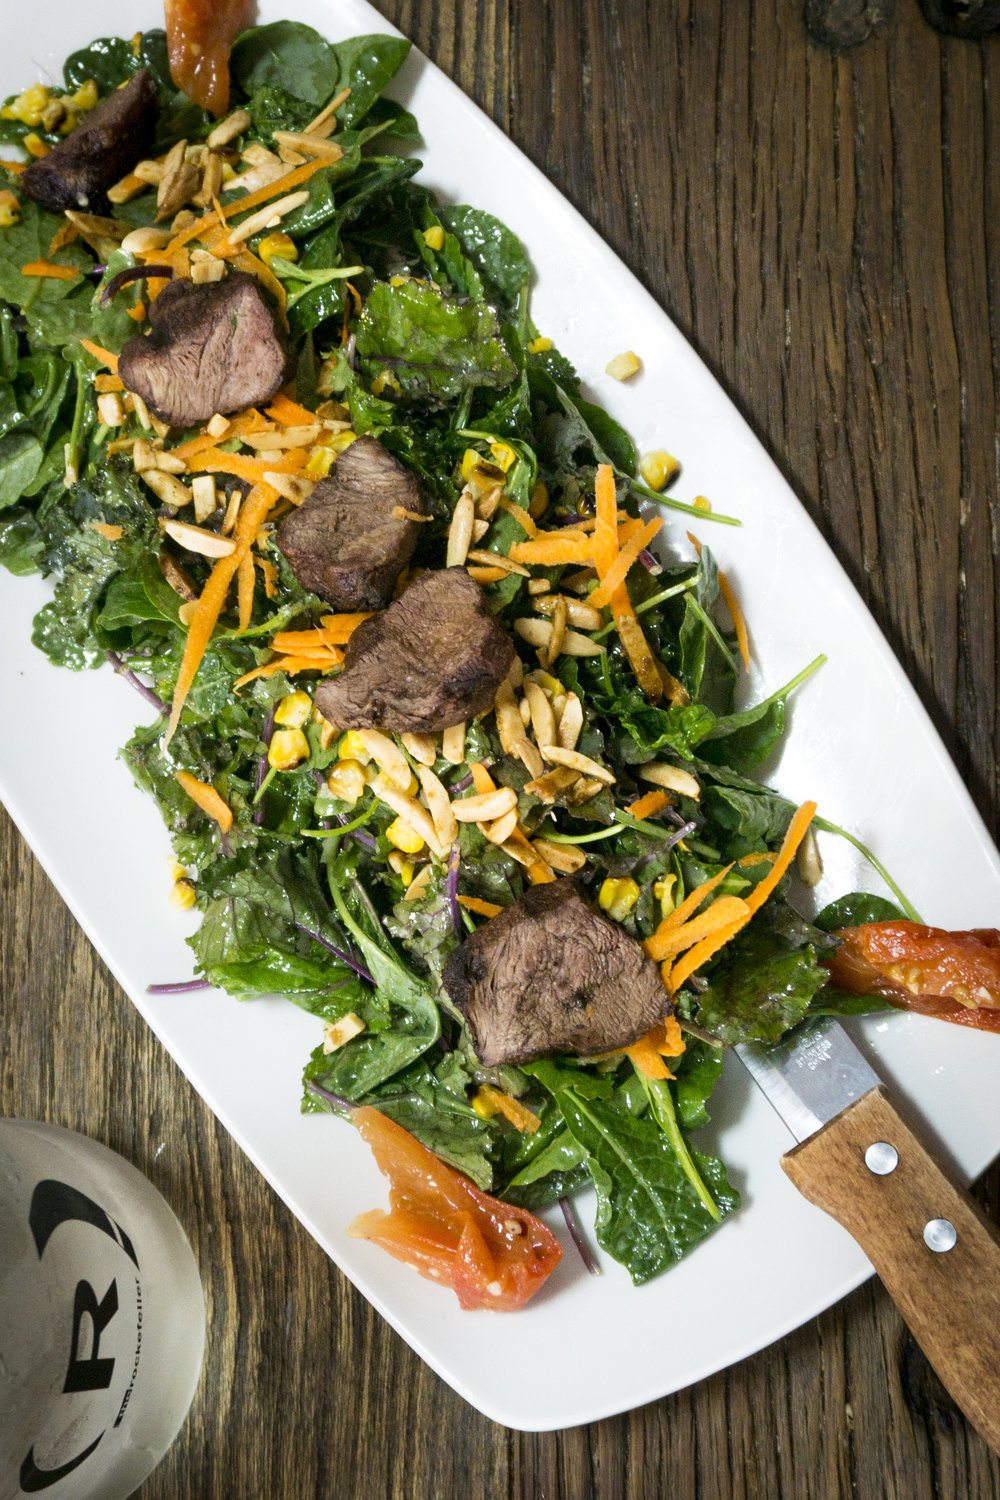 Healthy Steak Salad at The Rockefeller Manhattan Beach